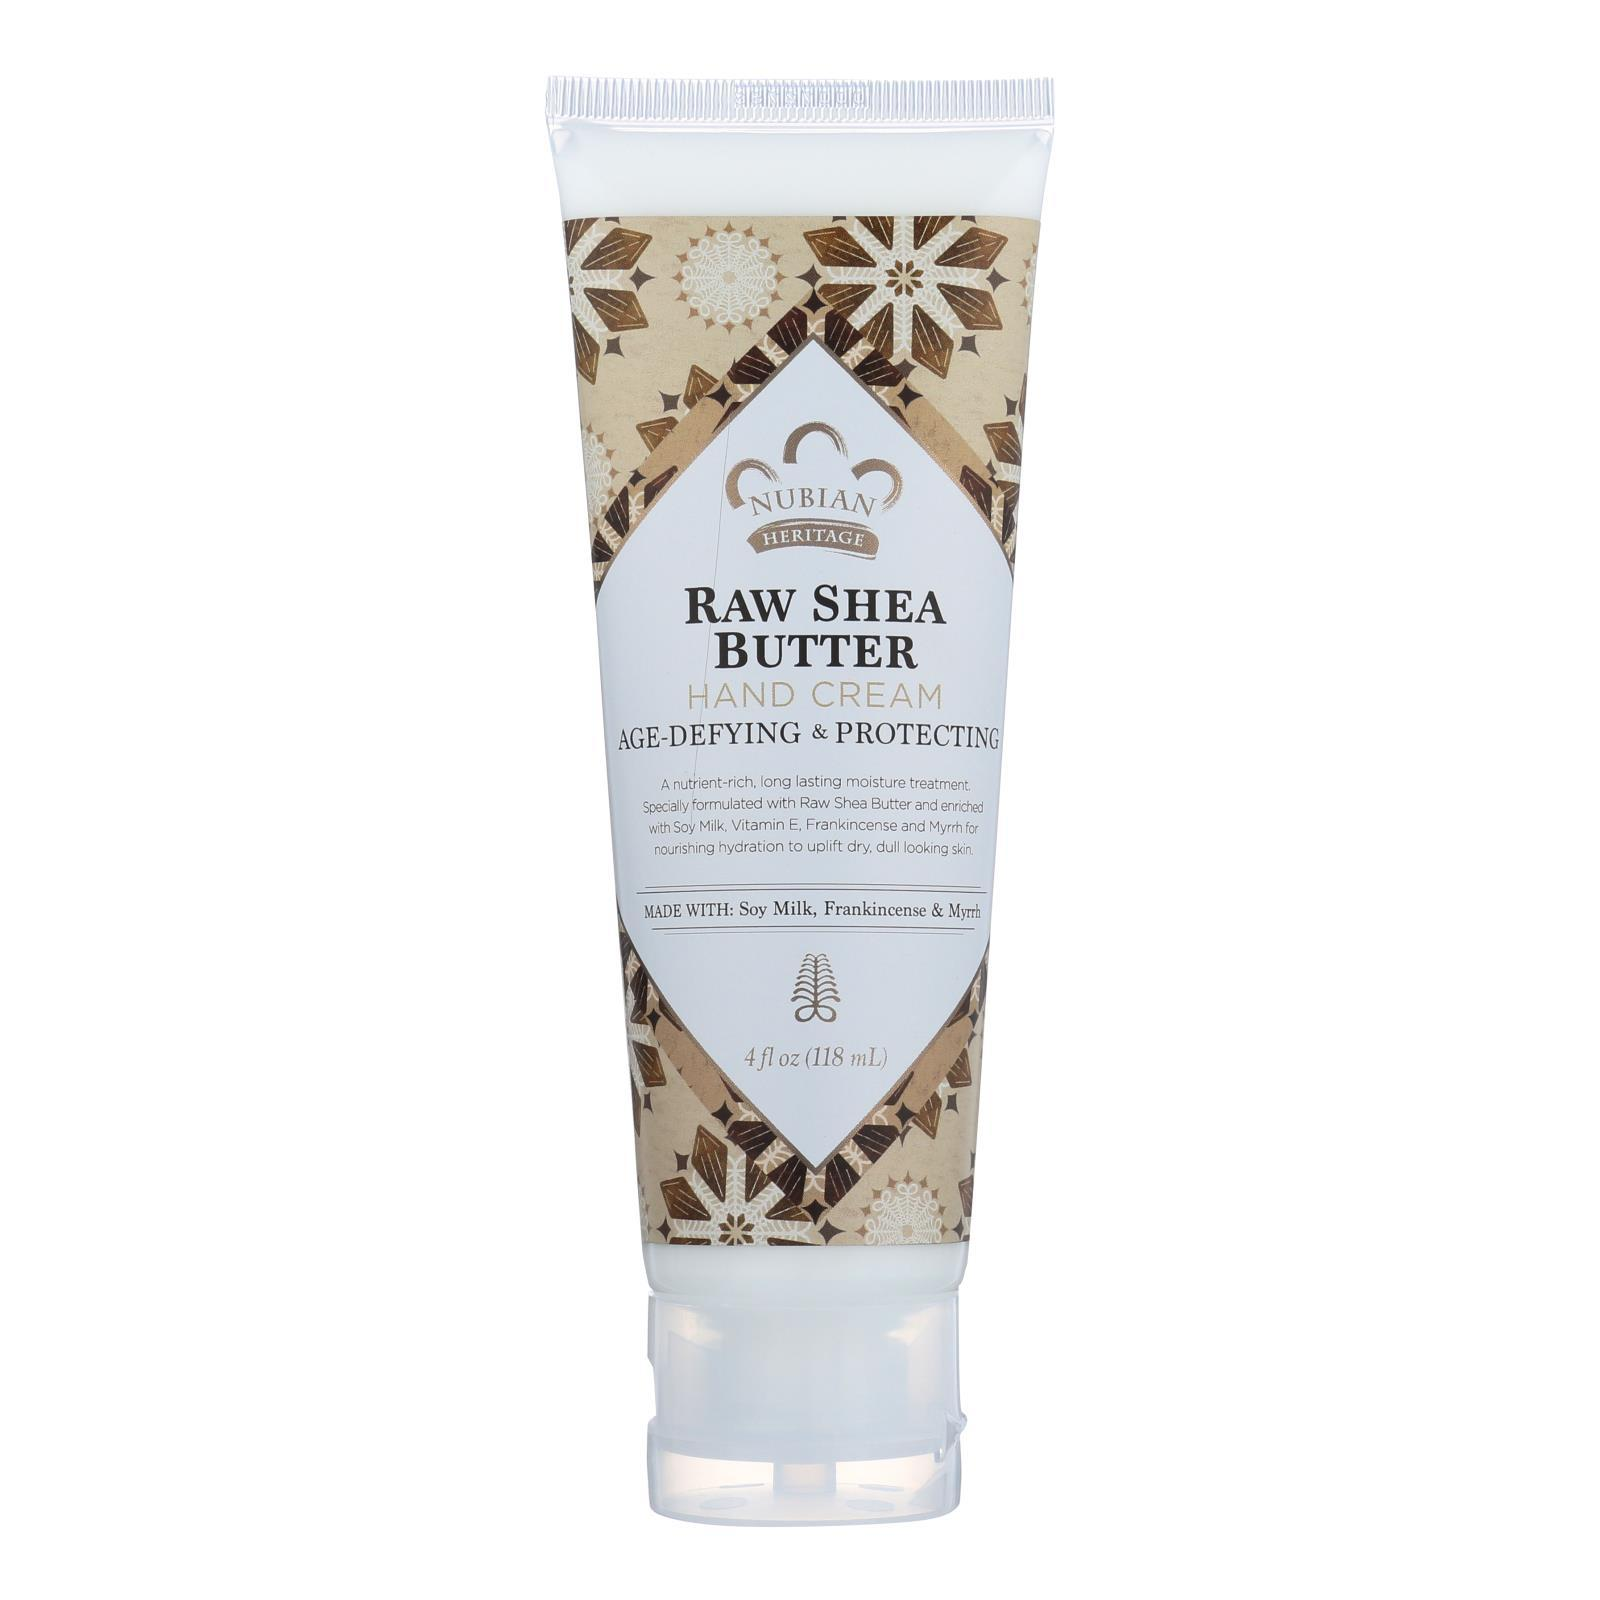 Nubian Heritage Hand Cream - Raw Shea with Frankincense - 4 oz - $9.99